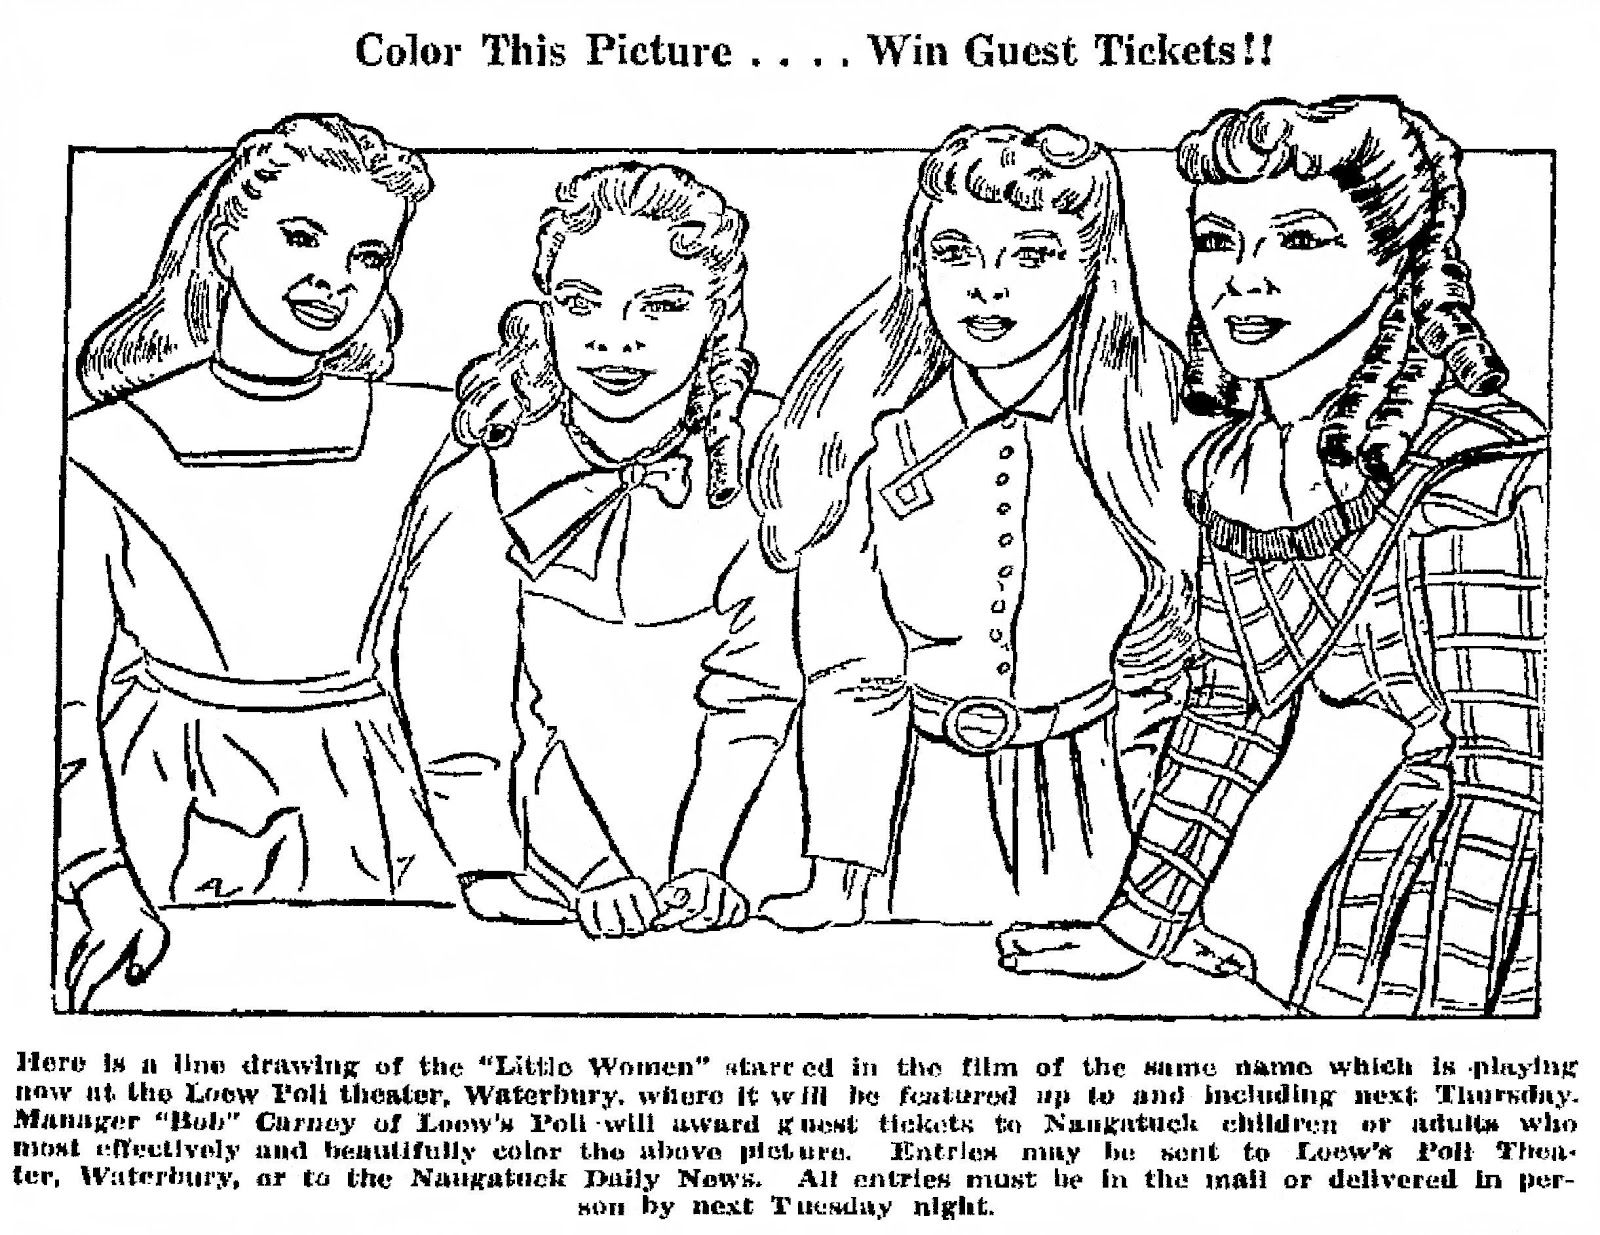 Color To Win Little Women In Newspaper